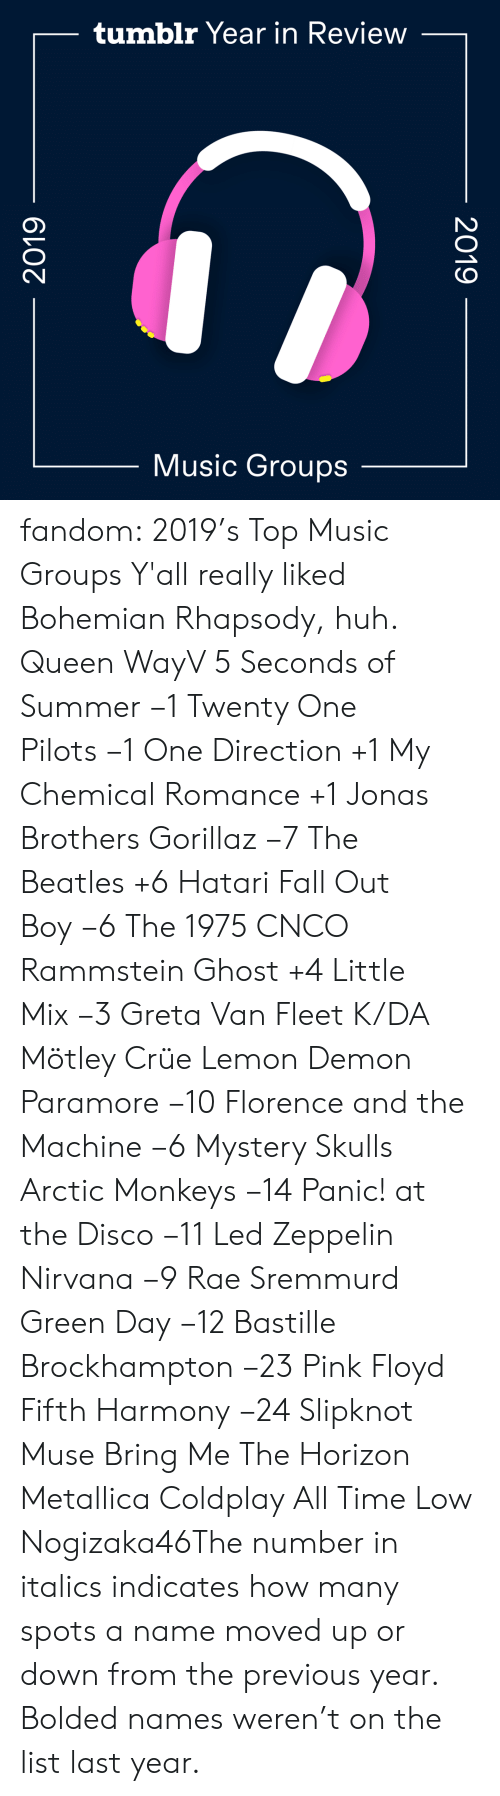 Moved: tumblr Year in Review  Music Groups  2019  2019 fandom:  2019's Top Music Groups  Y'all really liked Bohemian Rhapsody, huh.  Queen  WayV  5 Seconds of Summer −1  Twenty One Pilots −1  One Direction +1  My Chemical Romance +1  Jonas Brothers  Gorillaz −7  The Beatles +6  Hatari  Fall Out Boy −6  The 1975  CNCO  Rammstein  Ghost +4  Little Mix −3  Greta Van Fleet  K/DA  Mötley Crüe  Lemon Demon  Paramore −10  Florence and the Machine −6  Mystery Skulls  Arctic Monkeys −14  Panic! at the Disco −11  Led Zeppelin   Nirvana −9  Rae Sremmurd  Green Day −12  Bastille  Brockhampton −23  Pink Floyd  Fifth Harmony −24  Slipknot  Muse  Bring Me The Horizon  Metallica  Coldplay  All Time Low  Nogizaka46The number in italics indicates how many spots a name moved up or down from the previous year. Bolded names weren't on the list last year.